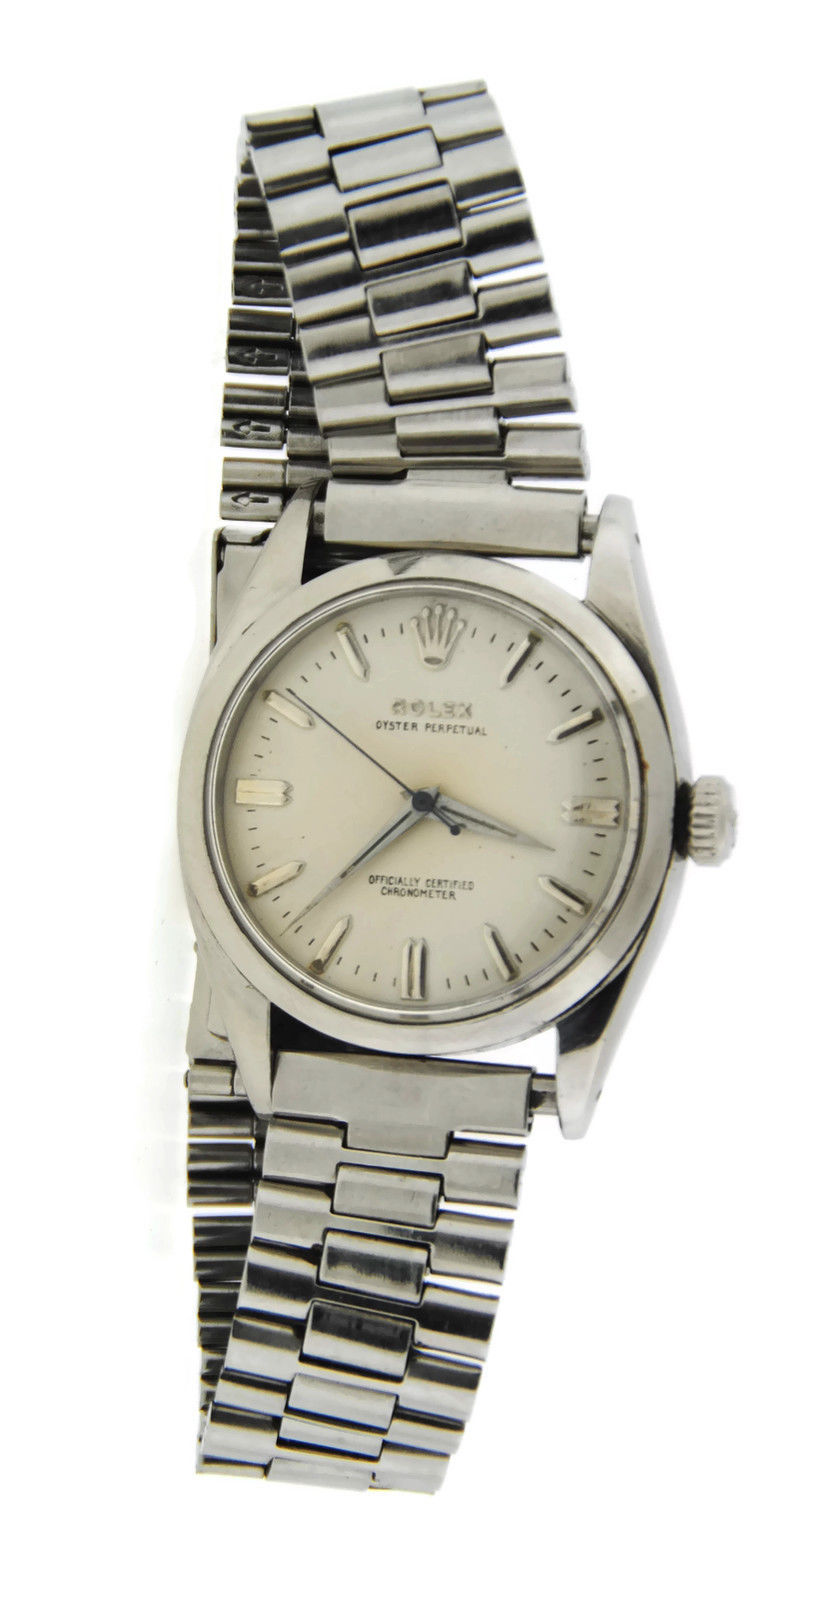 "Image of ""Rolex Oyster Perpetual 6530 Stainless Steel Mens Watch"""